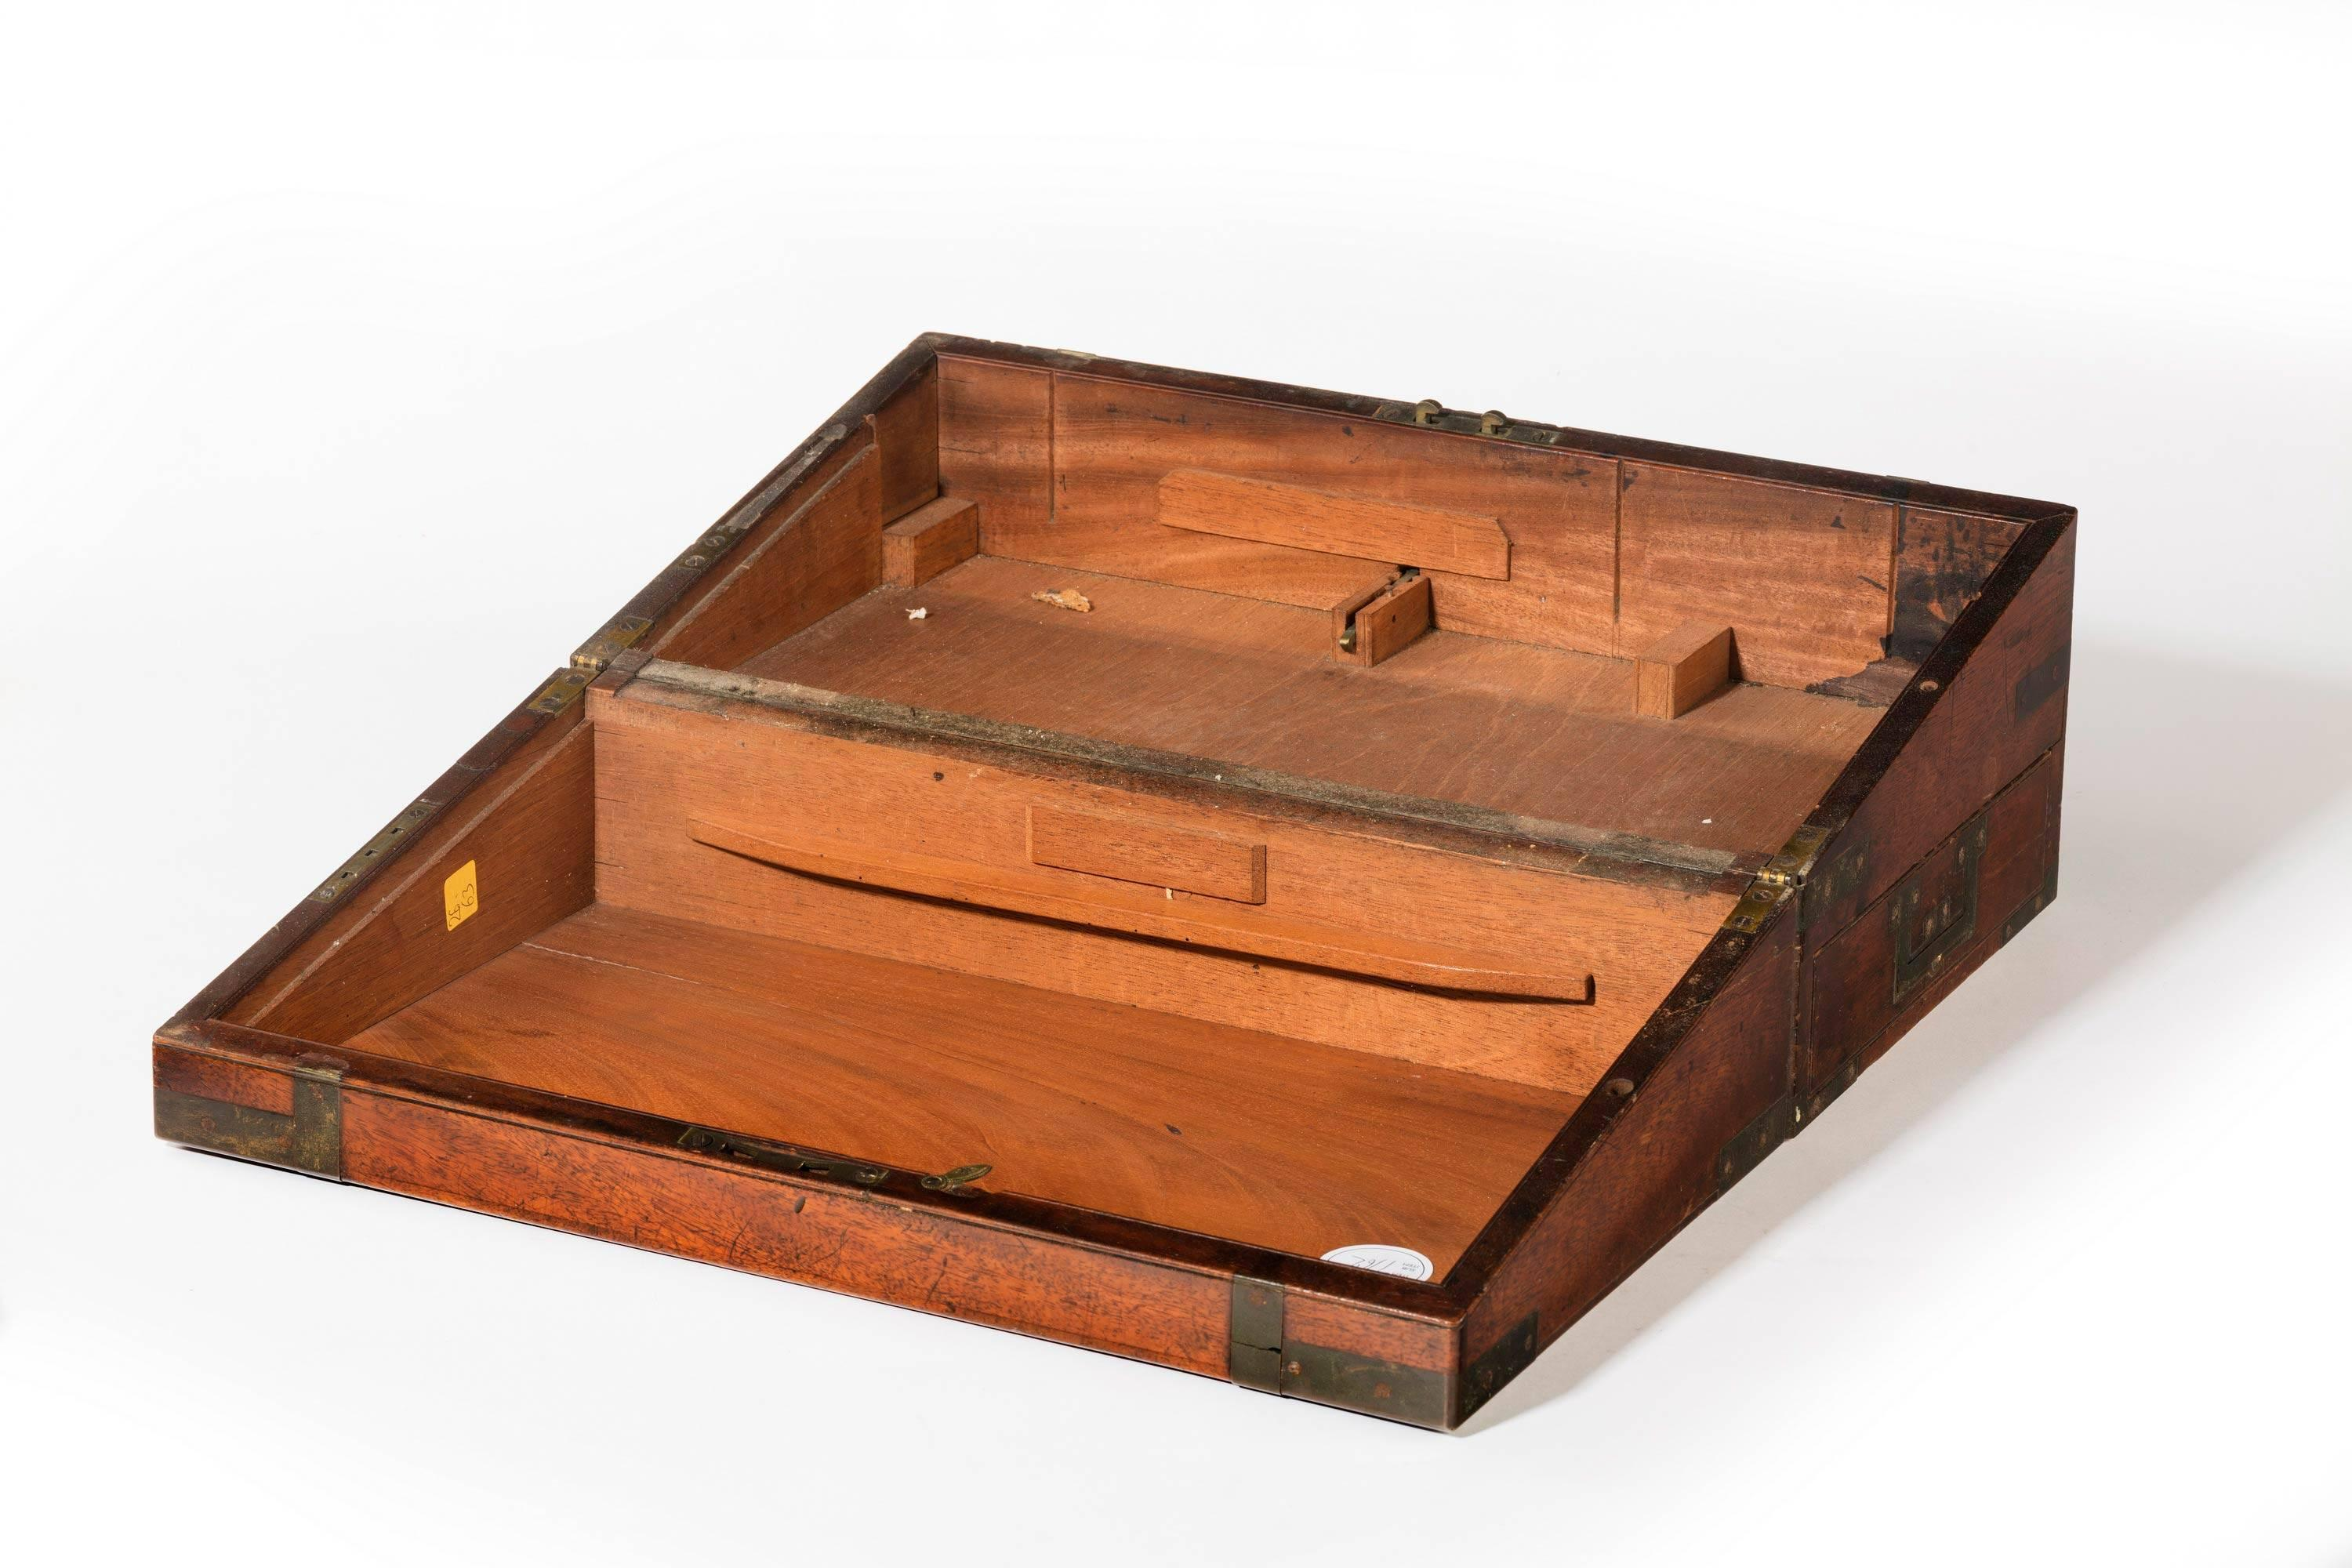 Edwardian (1901-1910) Boxes/chests Precise Vintage Wooden Writing Slope With Brass Corners And Escutcheon*